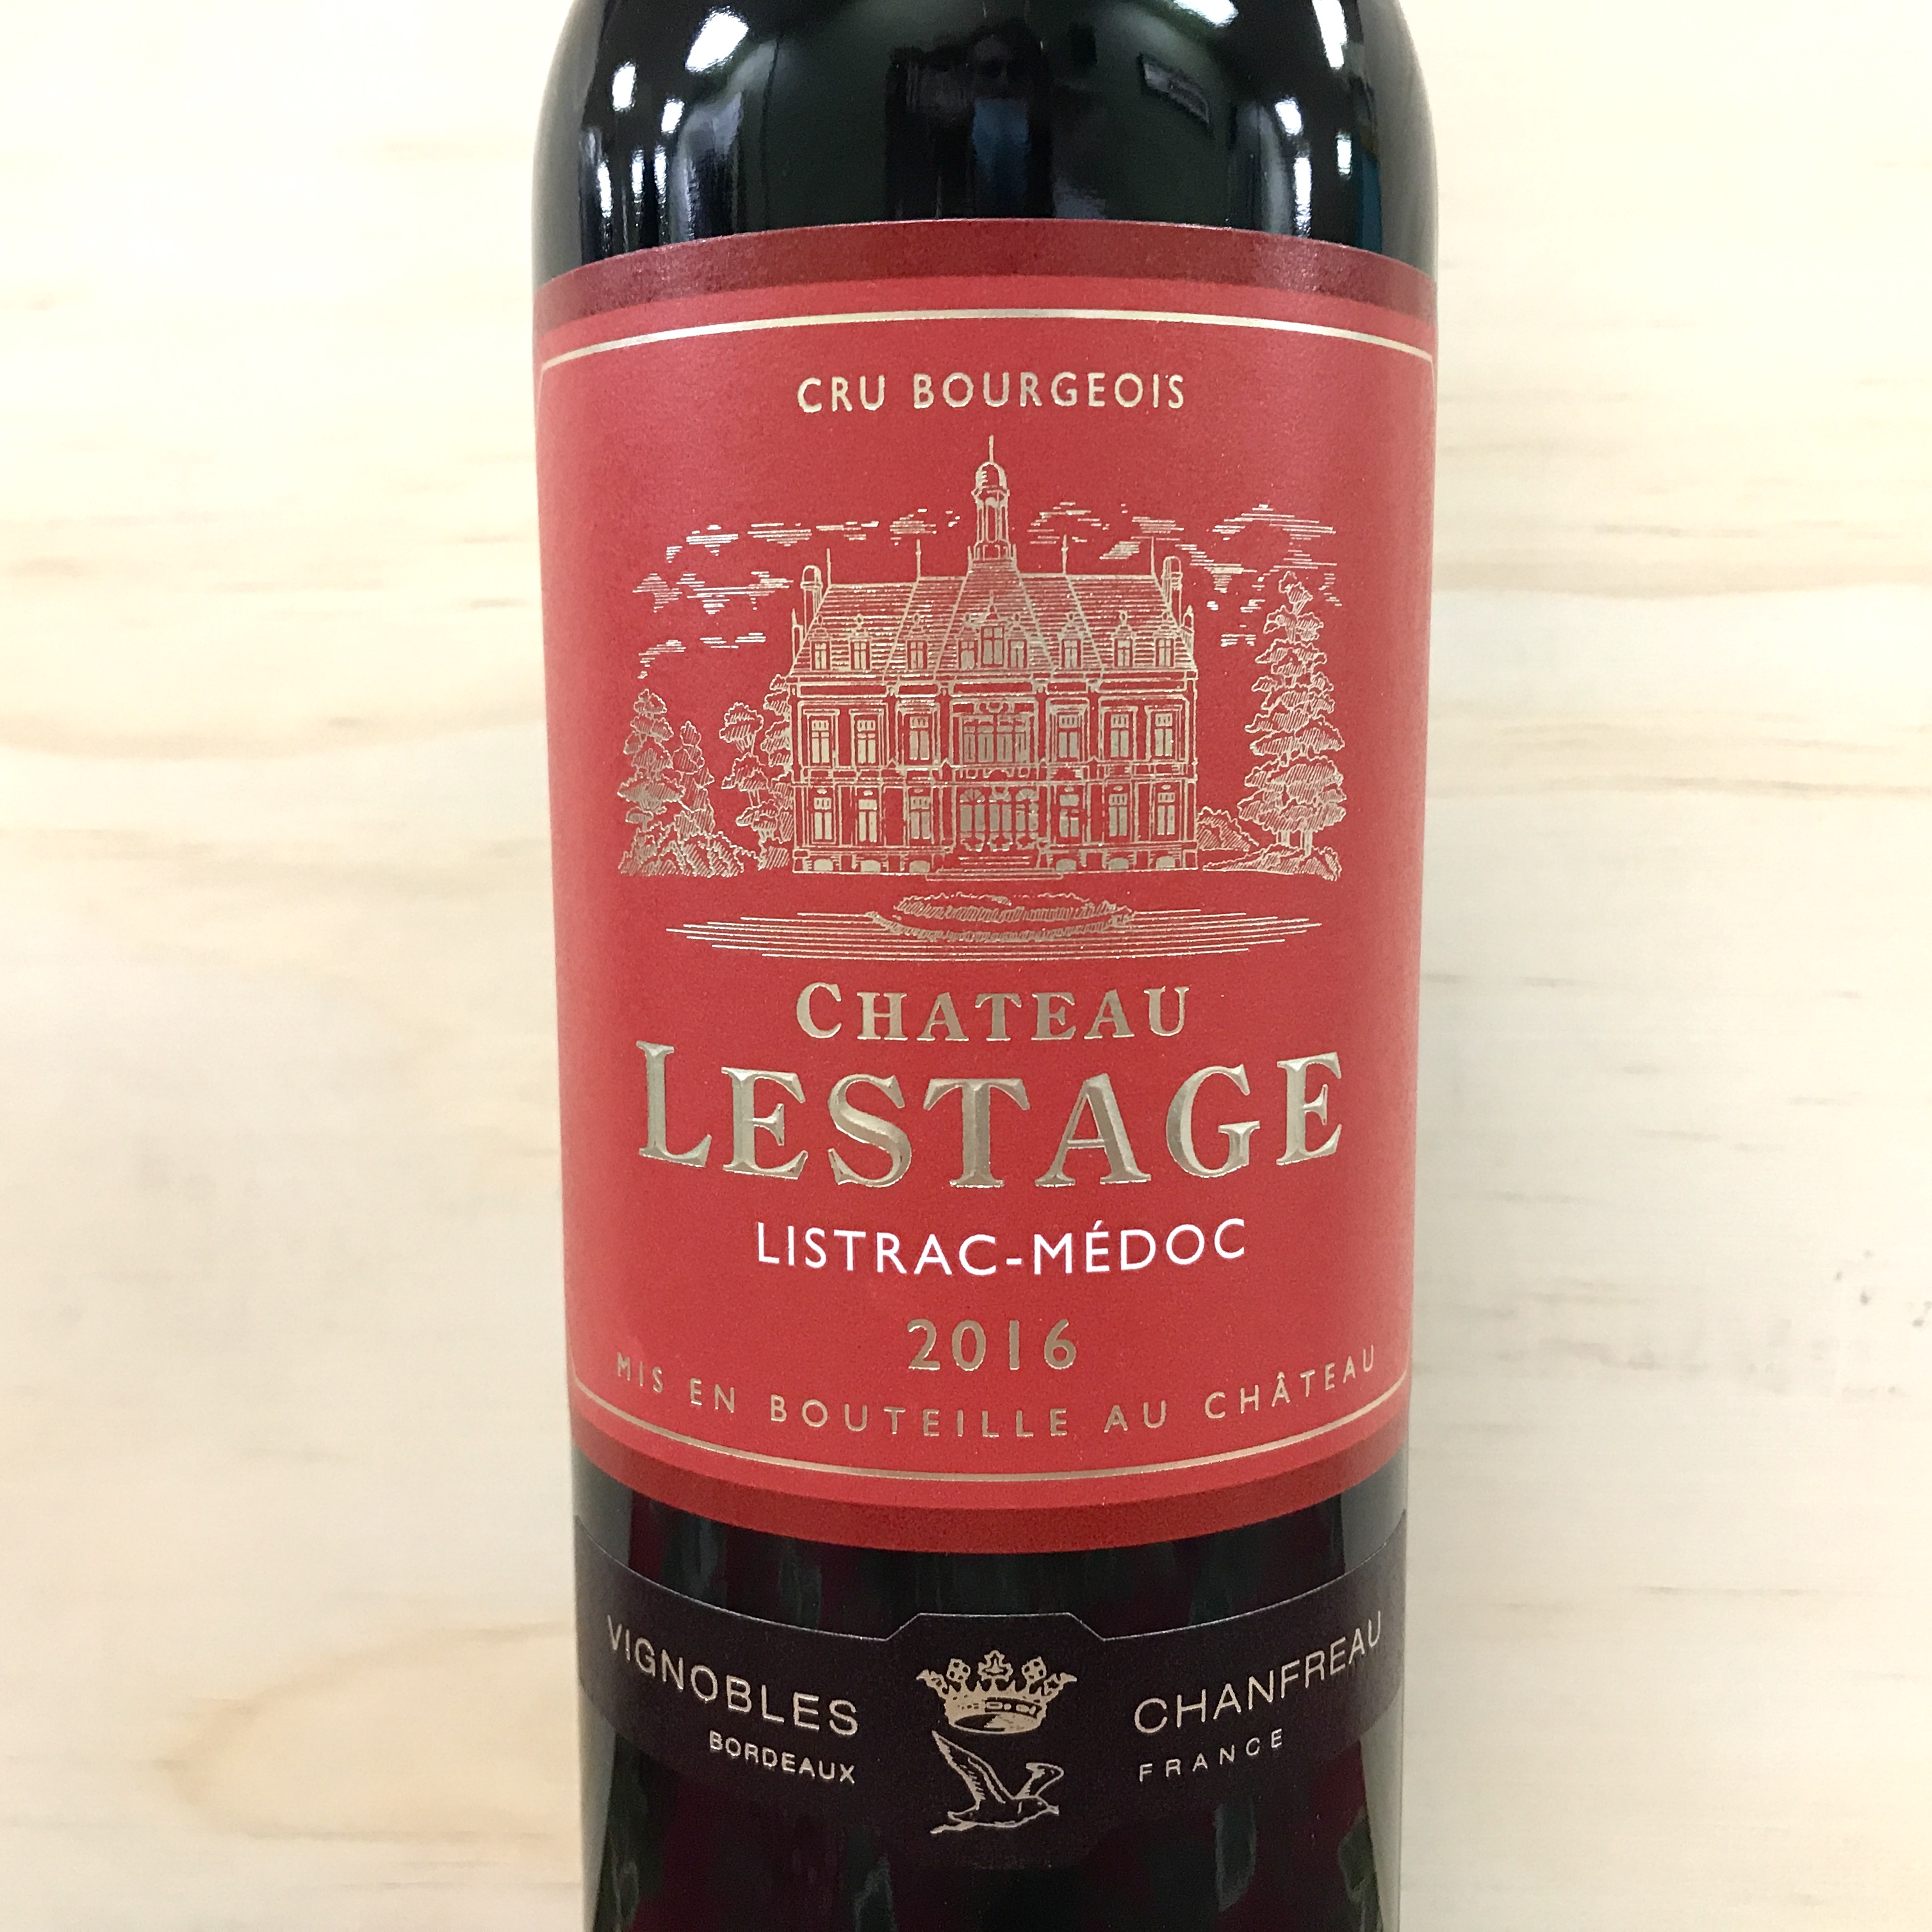 Chateau Lestage Listrac-Medoc rouge 2016